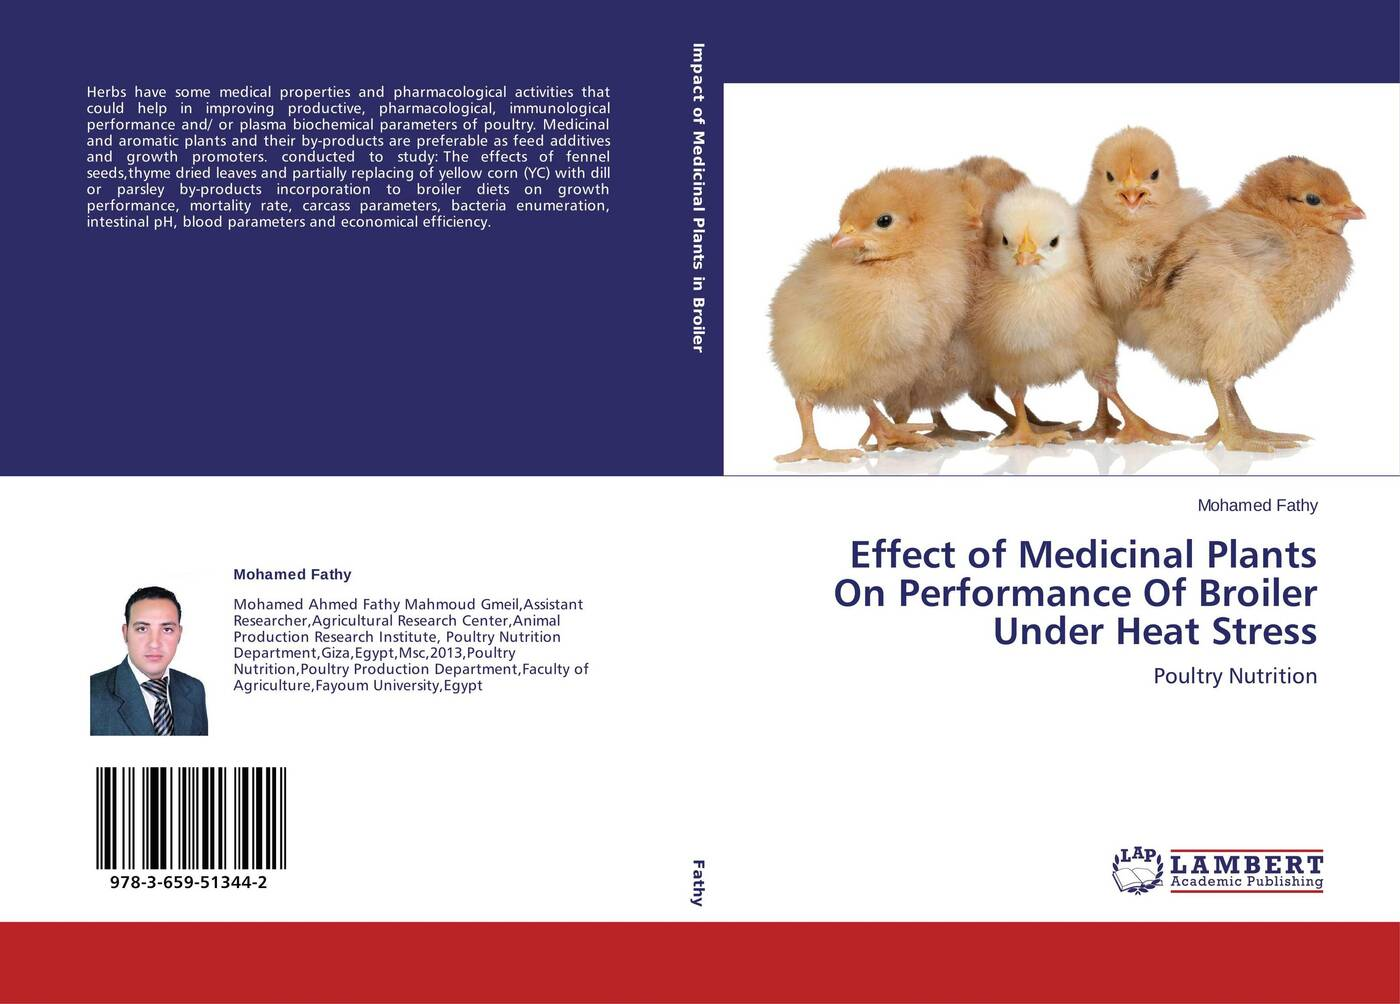 Mohamed Fathy Effect of Medicinal Plants On Performance Of Broiler Under Heat Stress mohamed aymen elouaer maher souguir and cherif hannachi effect of nacl priming on germination behavior of fenugreek